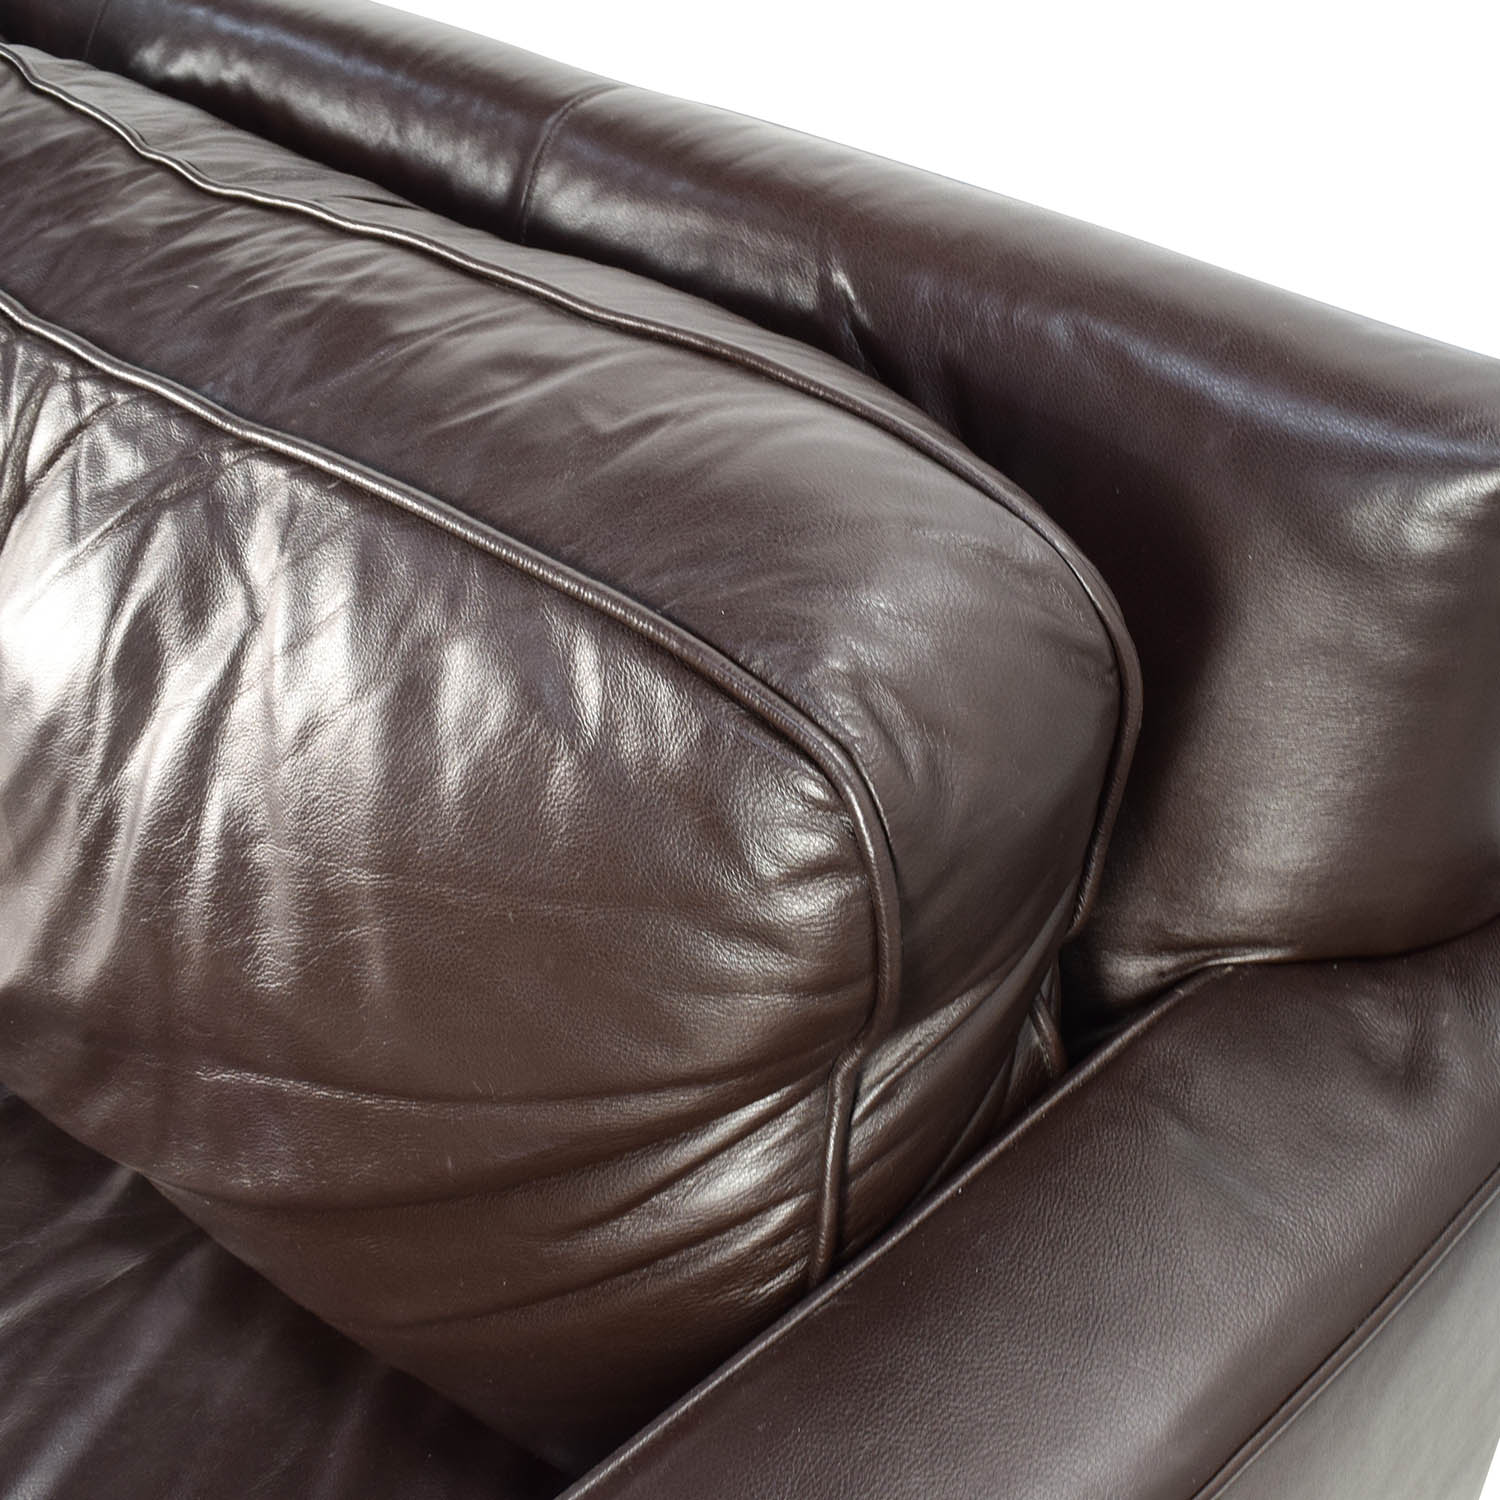 West Elm Henry Leather Sofa For